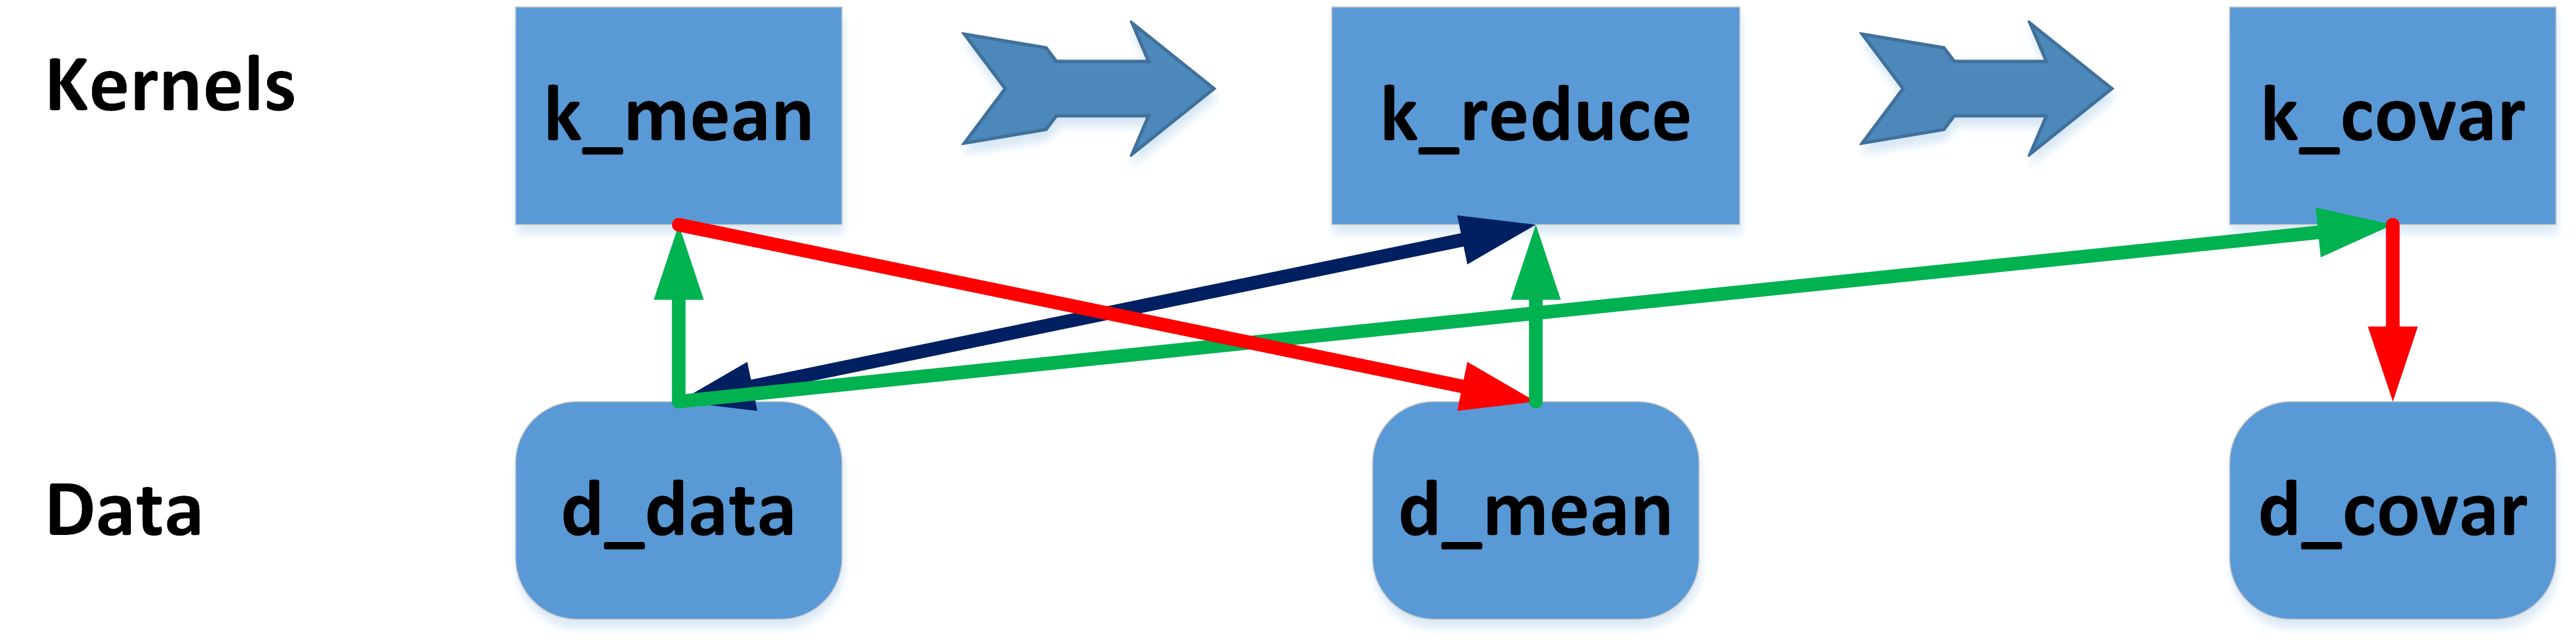 covariance_diagram.png